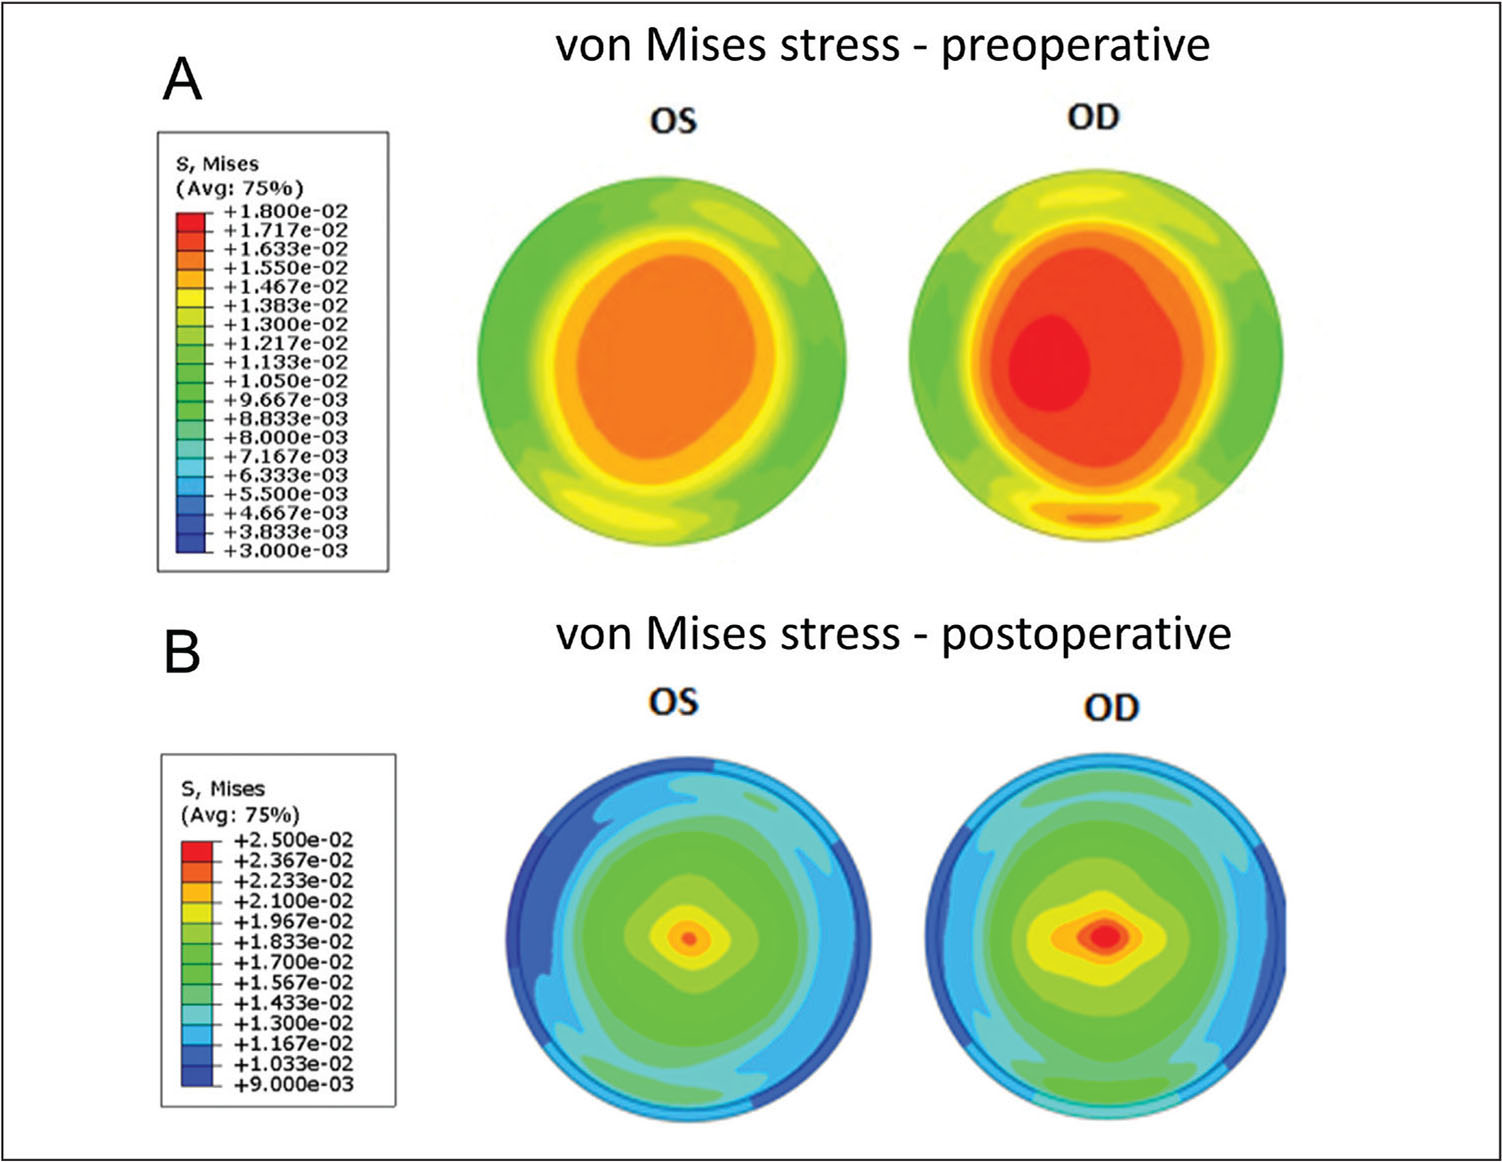 Maps of von Mises stress (in megapascals, MPa) from the anterior stroma in the (A) preoperative state and the (B) anterior residual stroma in the simulated post-LASIK state. Higher stress magnitudes as well as larger and more eccentric areas of peak stress are present before and after simulated LASIK in the eye that ultimately developed ectasia (right eye [OD]). Color scales are different for the preoperative and postoperative states to facilitate visualization of the interocular differences. OS = left eye